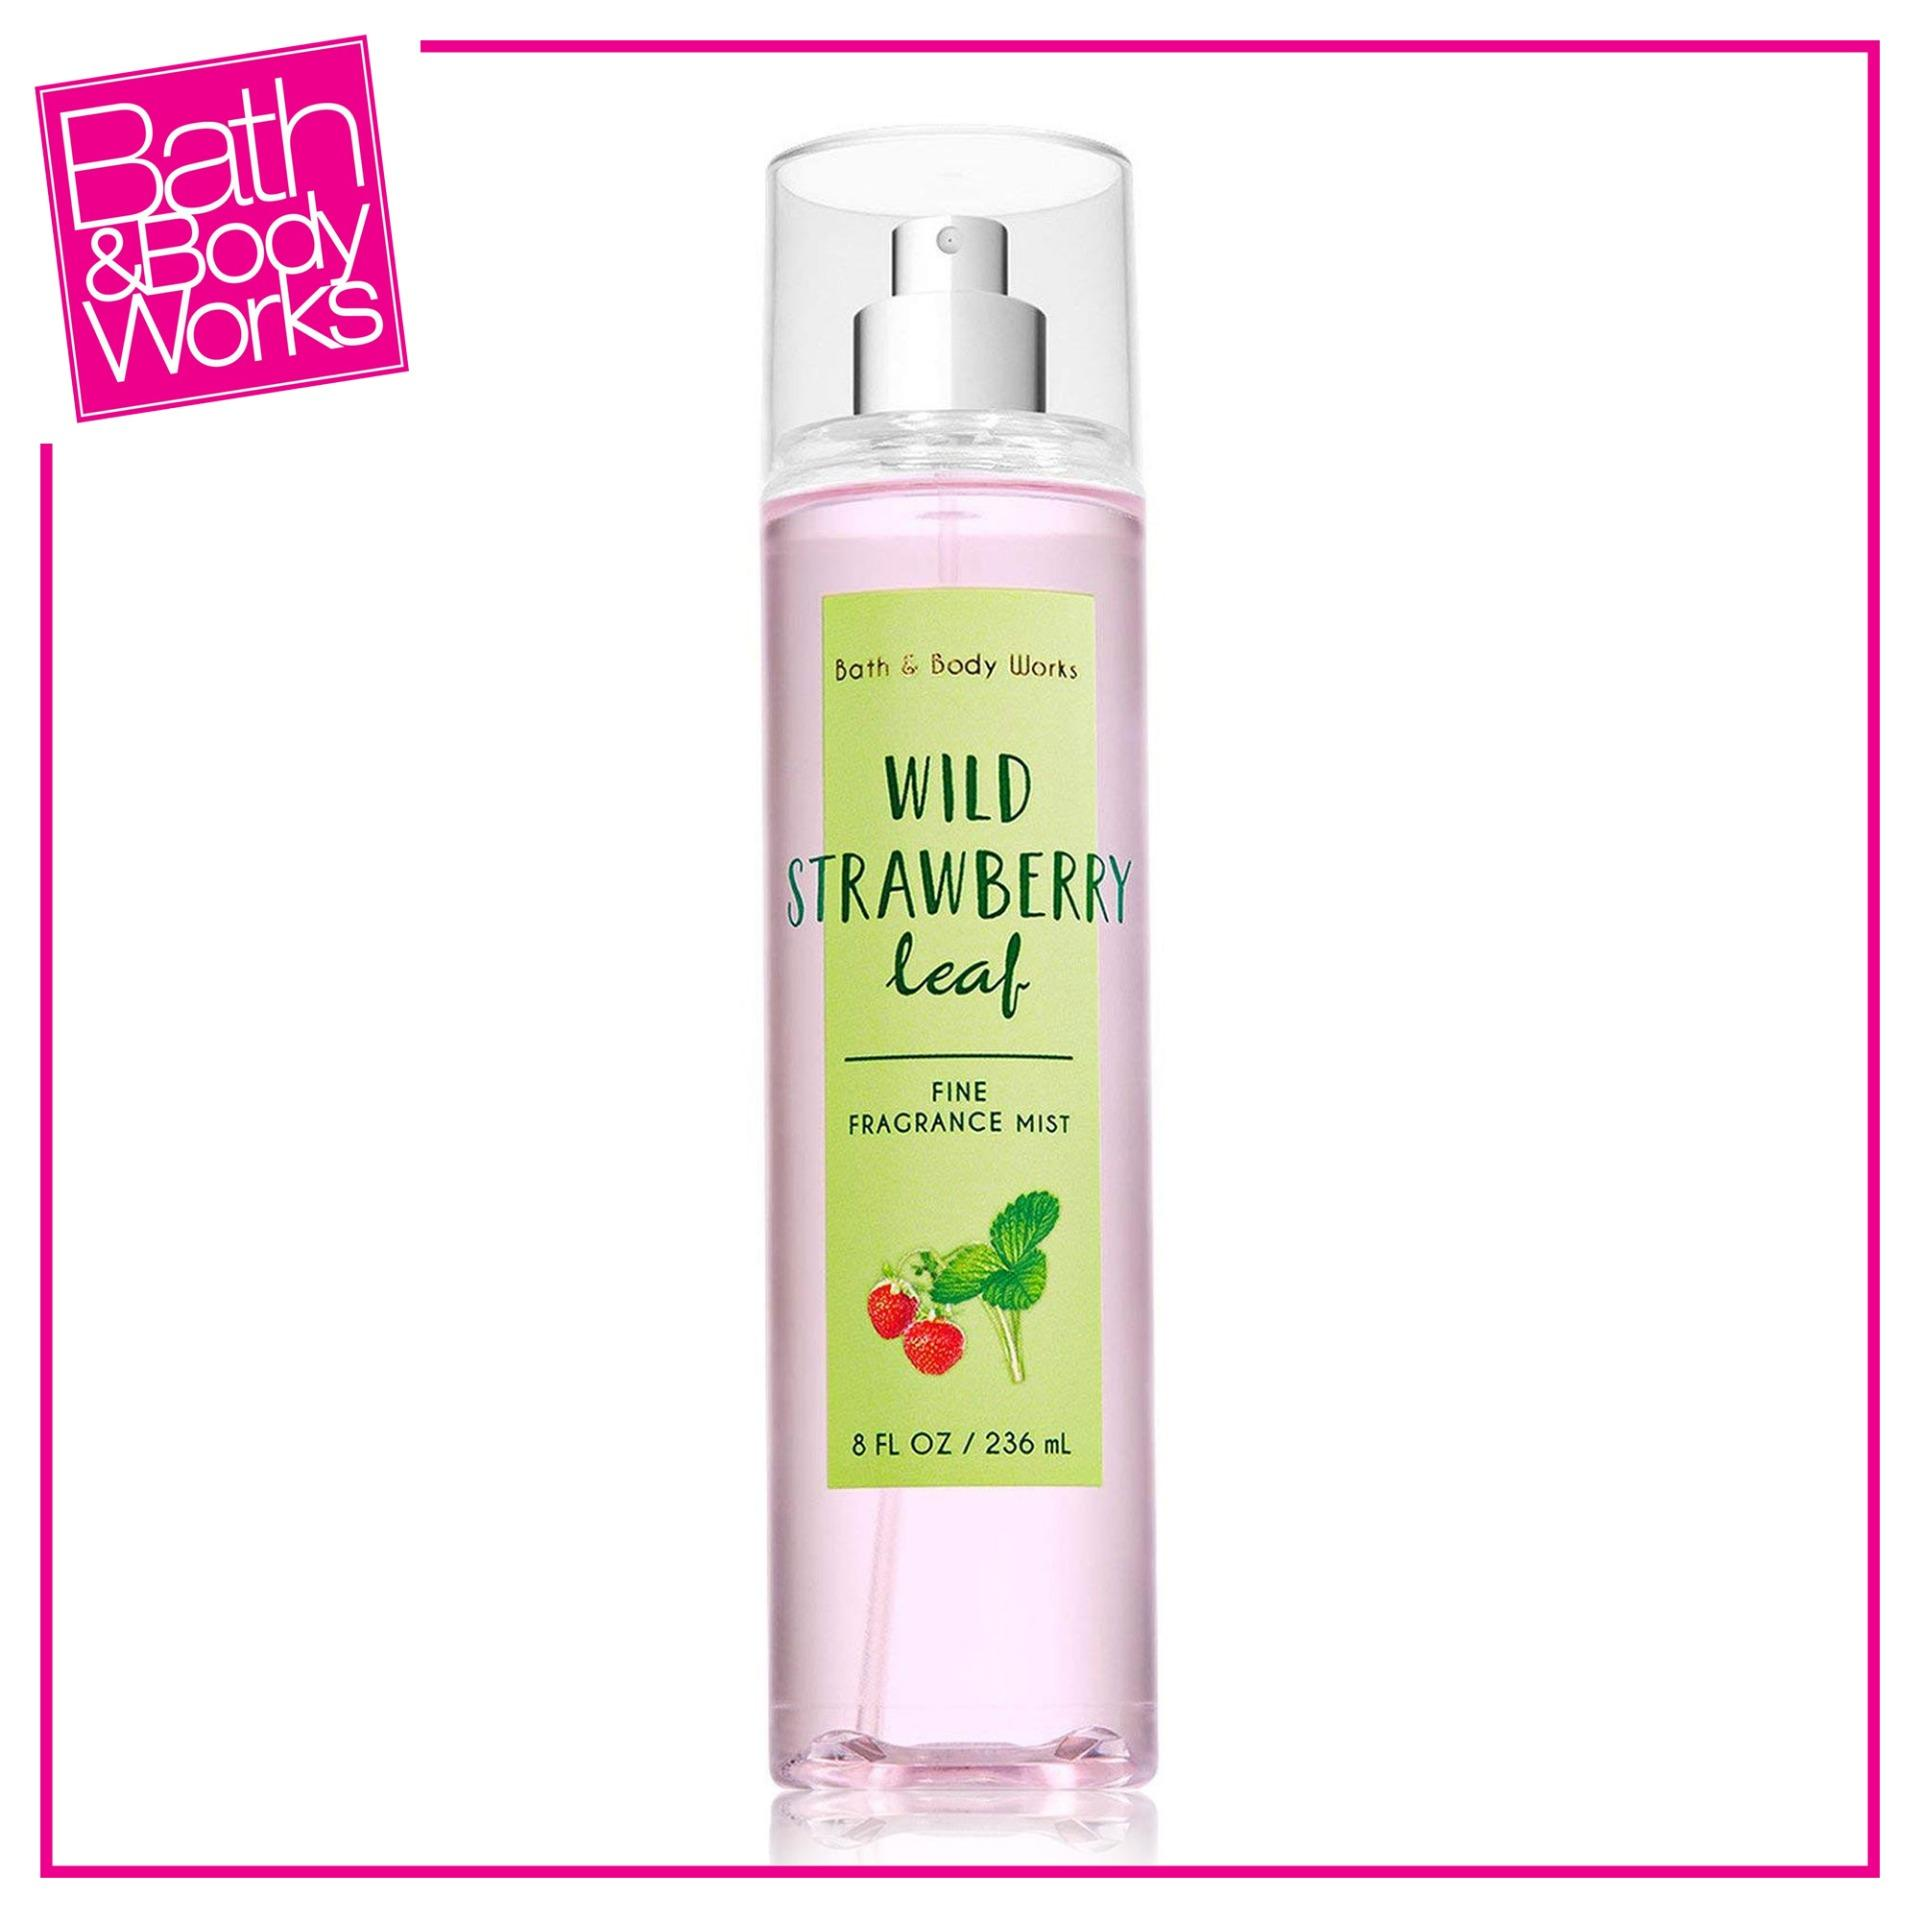 Bath & Body Works Fine Fragrance Mist Wild Strawberry Leaf 236ml